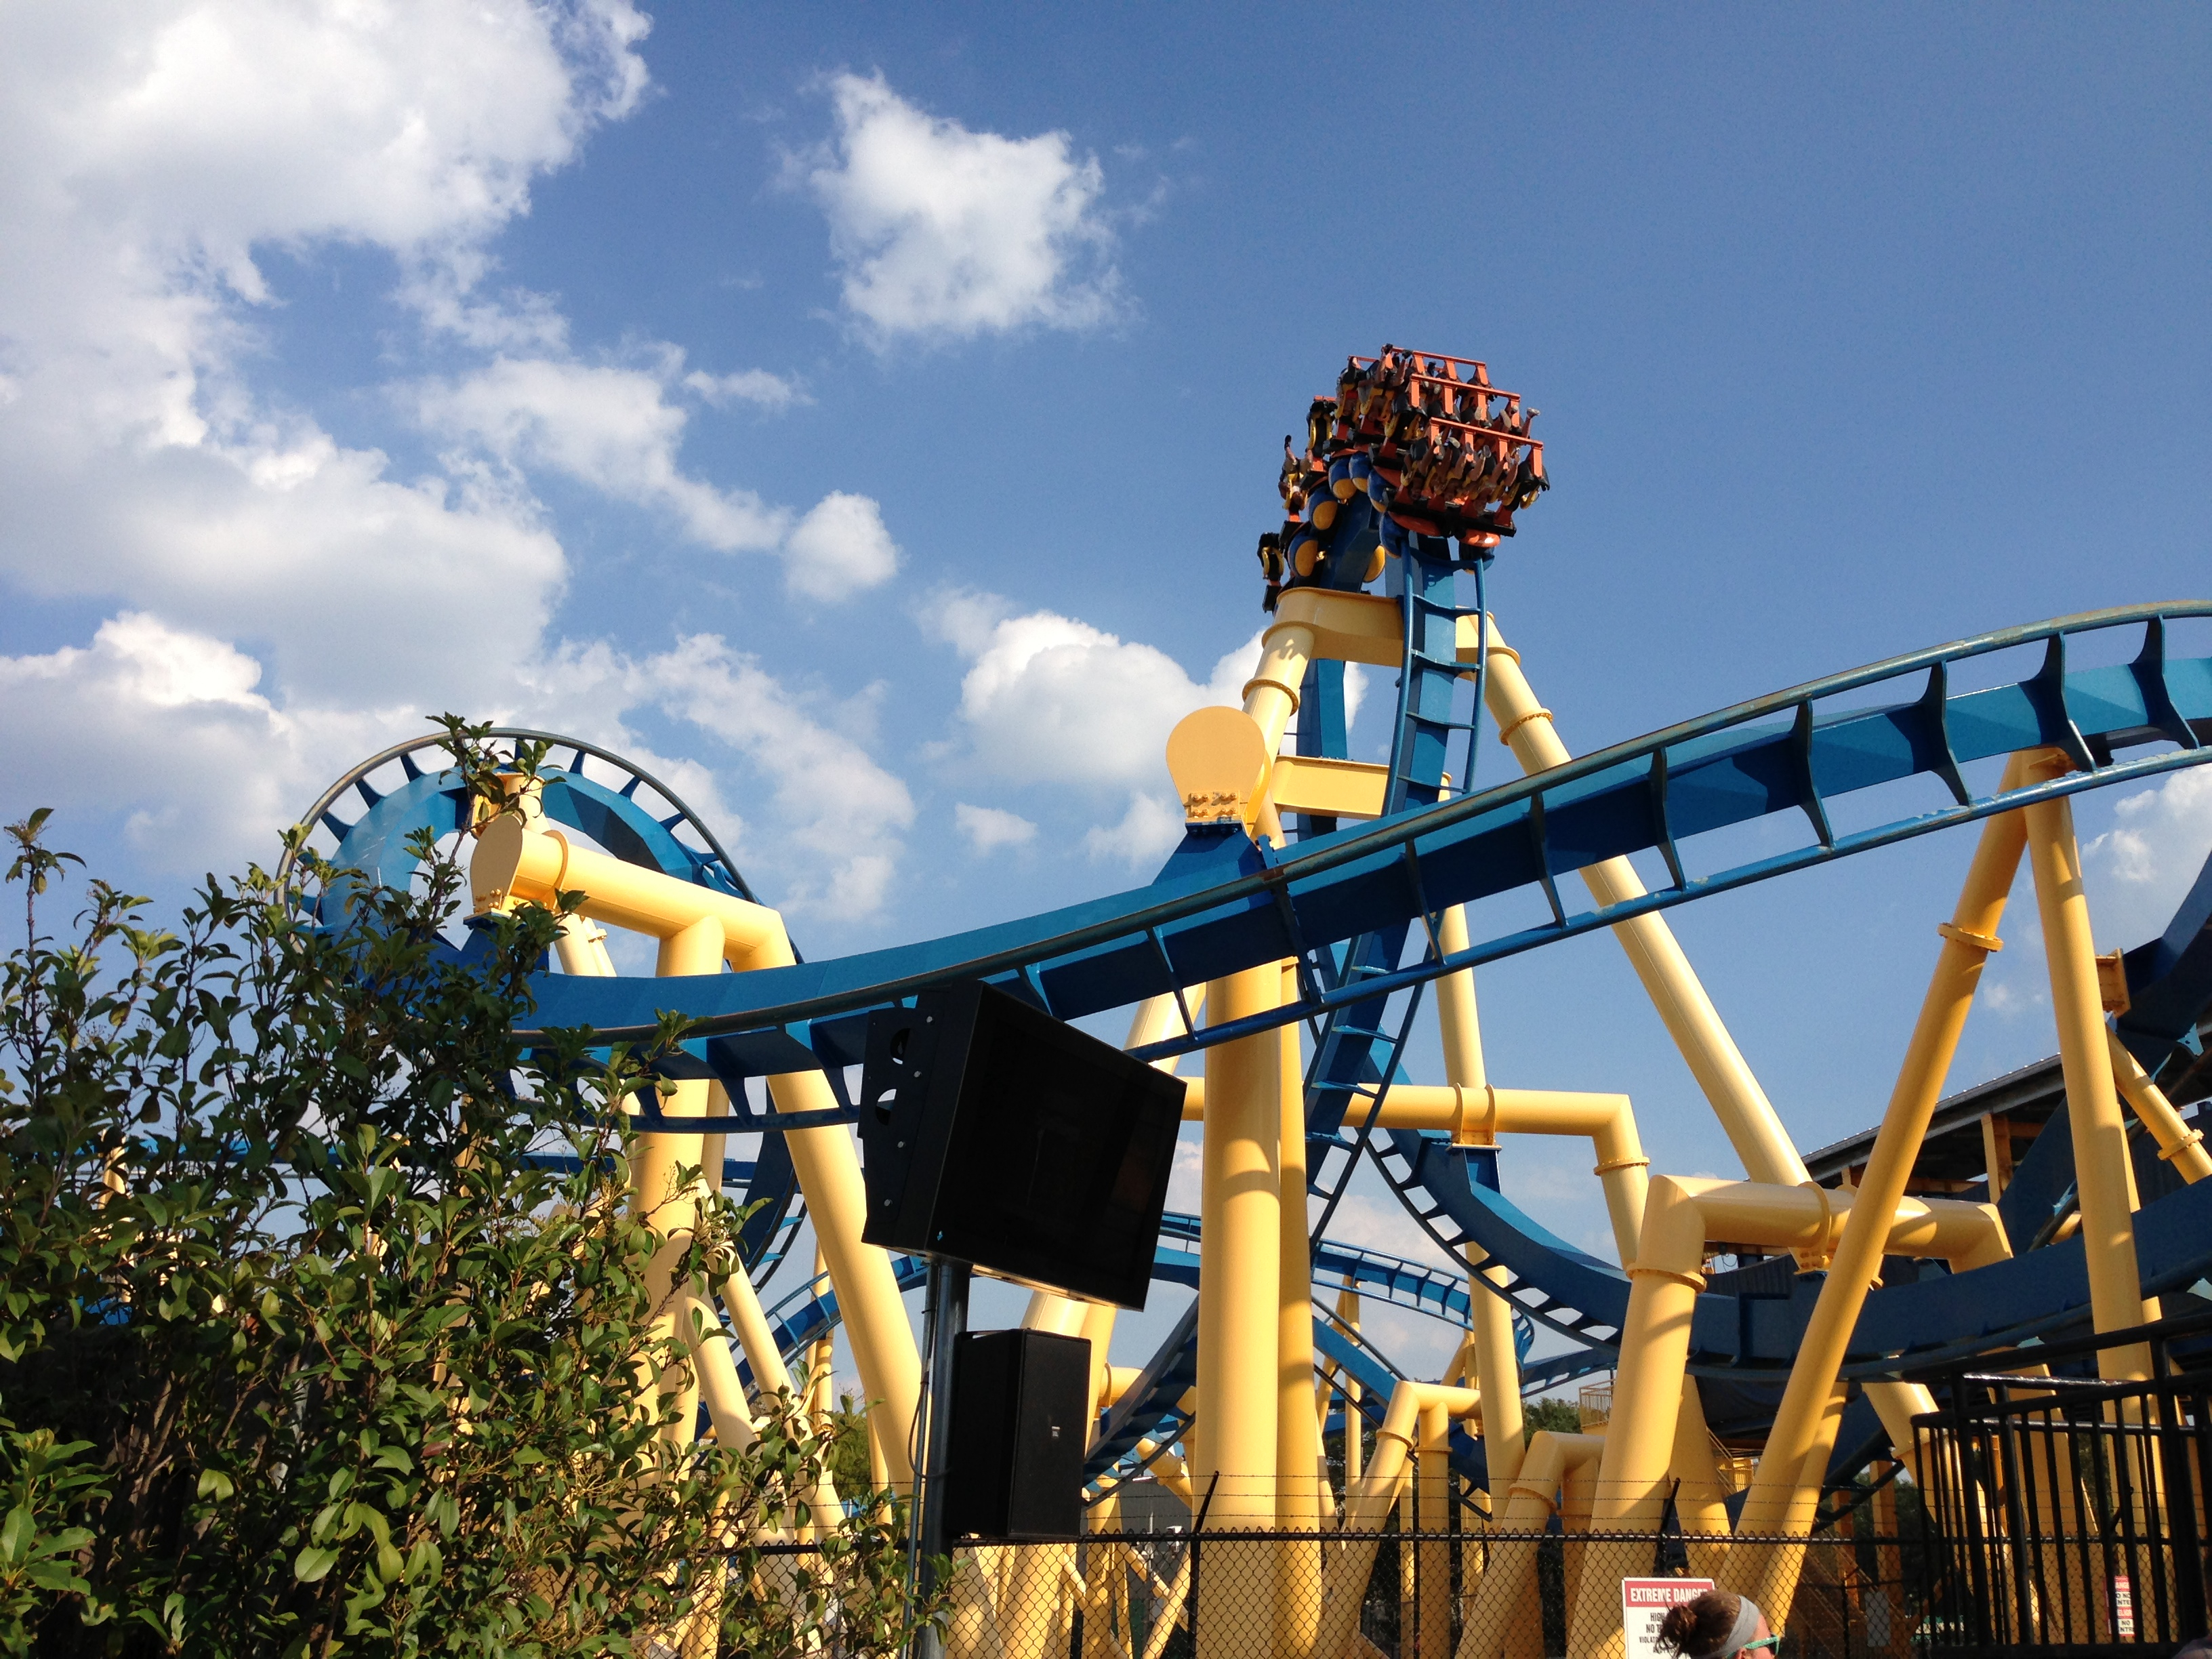 Six Flags Fiesta Texas 2013